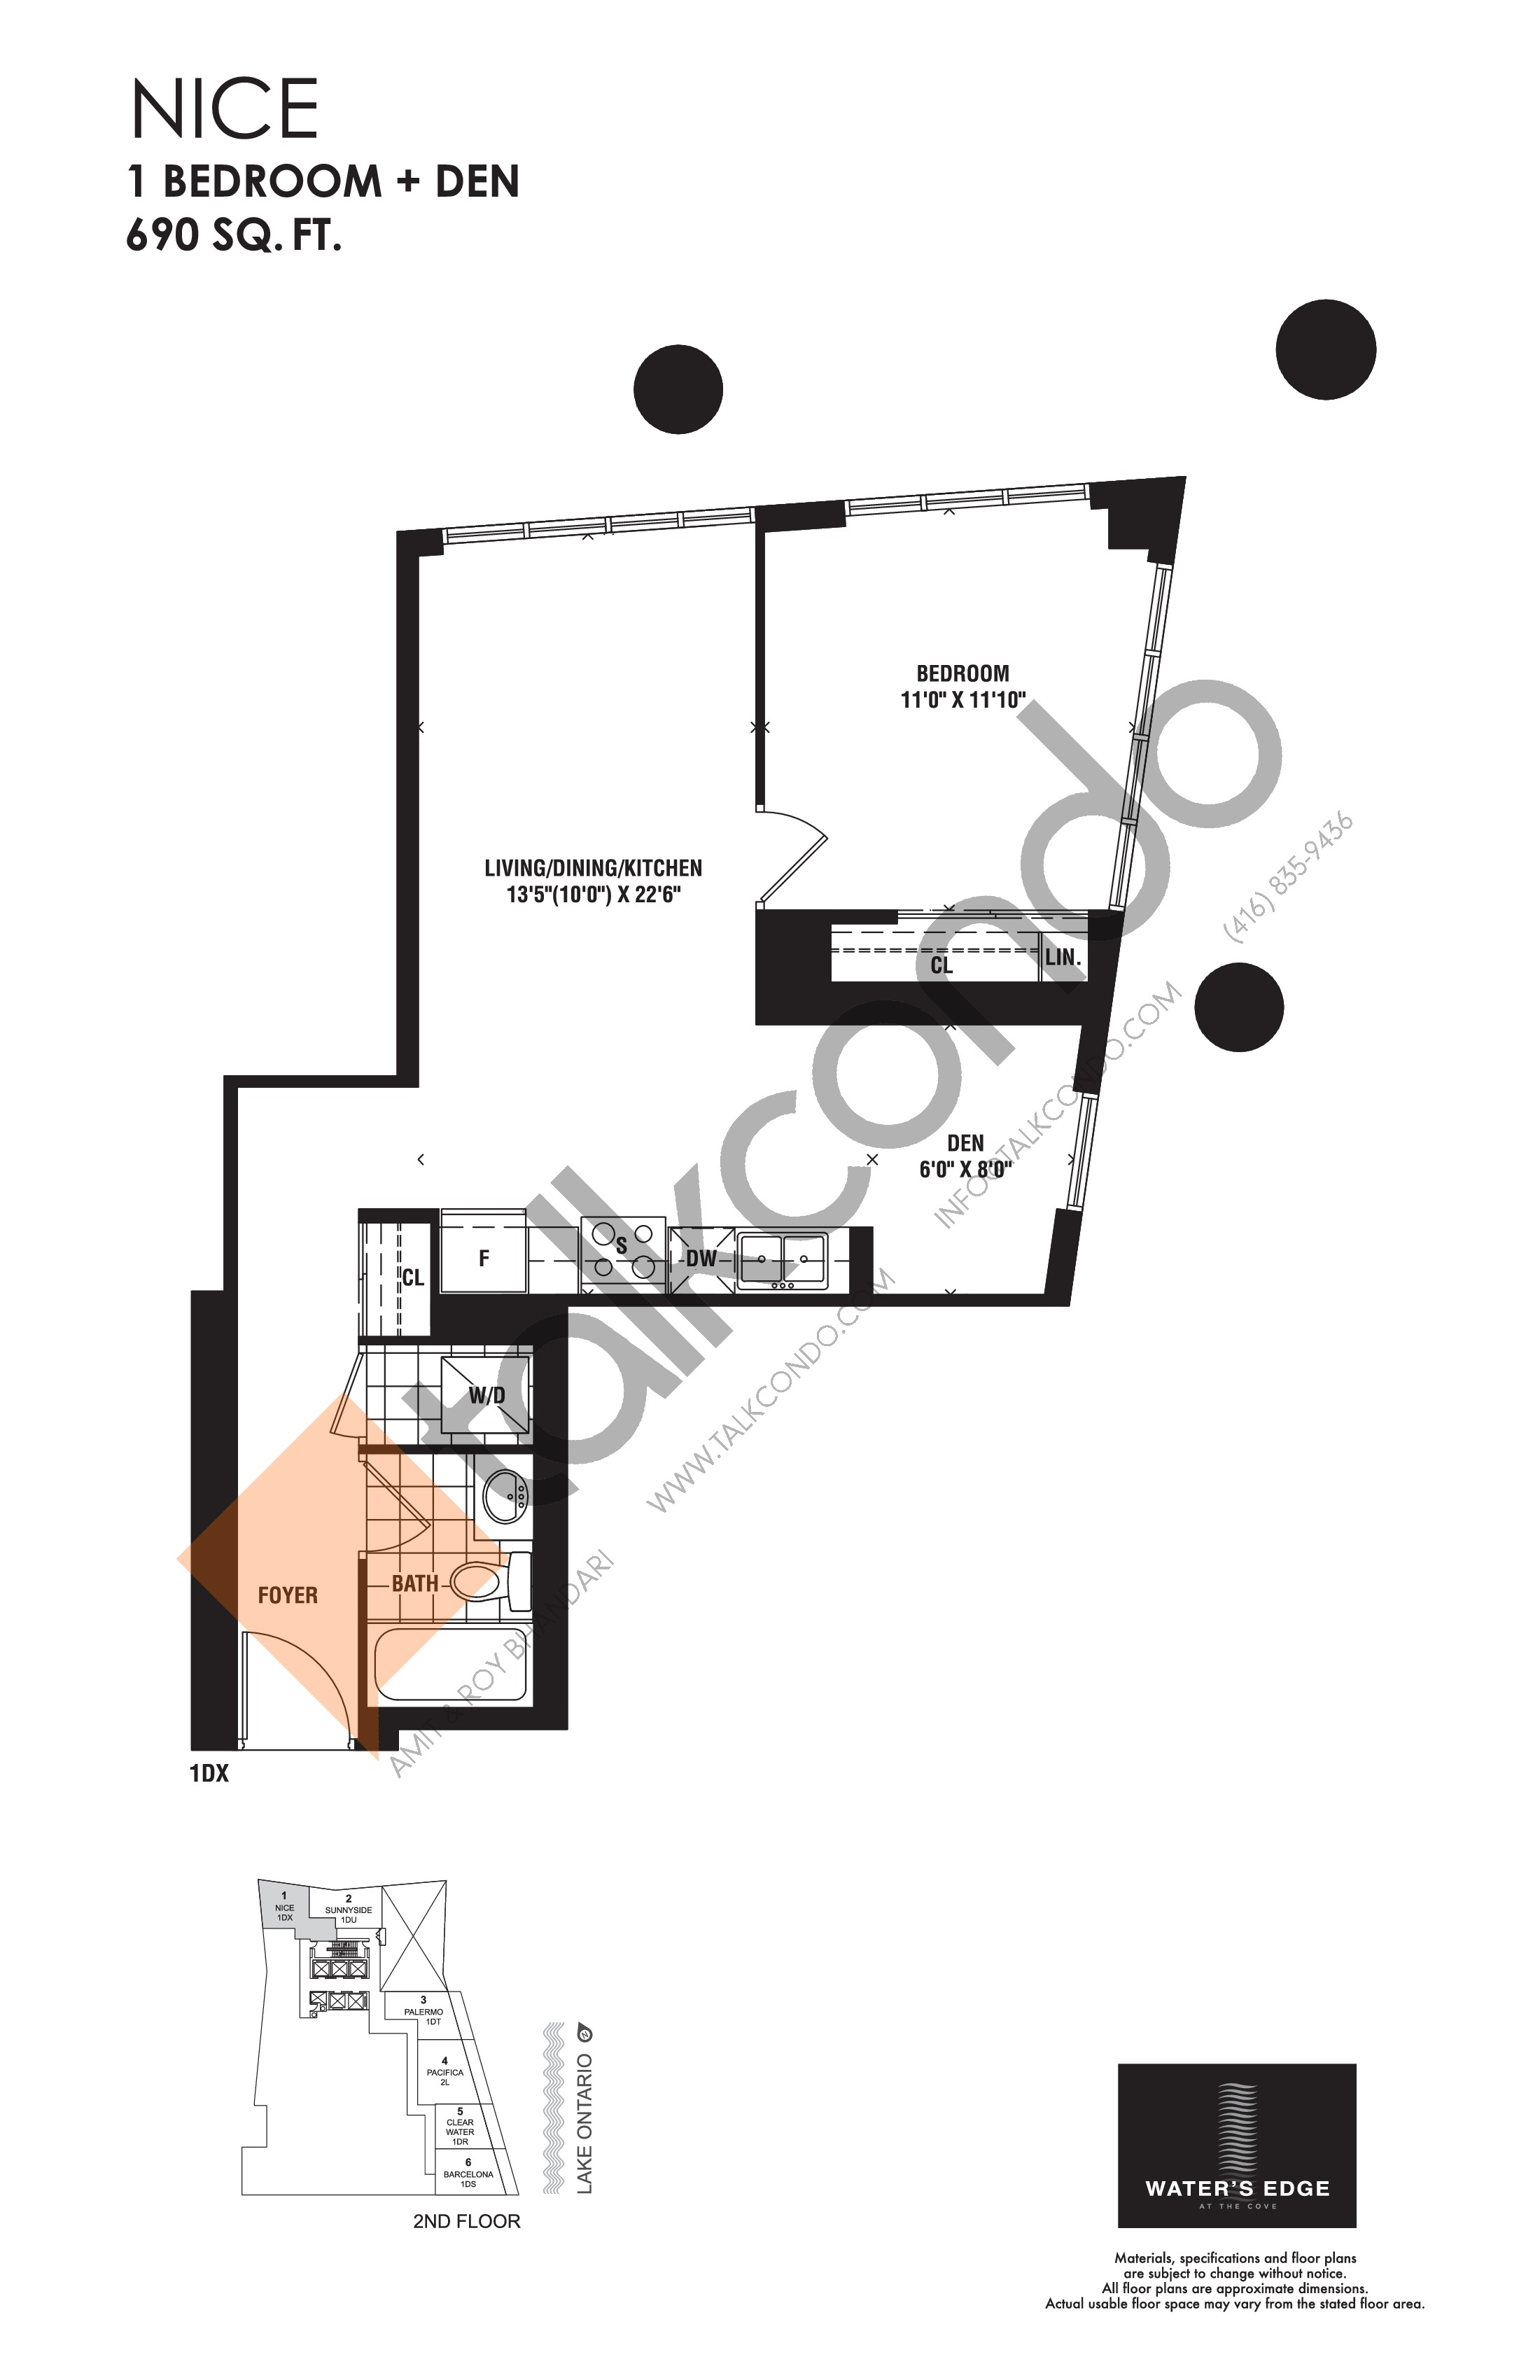 Nice Floor Plan at Water's Edge at the Cove Condos - 690 sq.ft